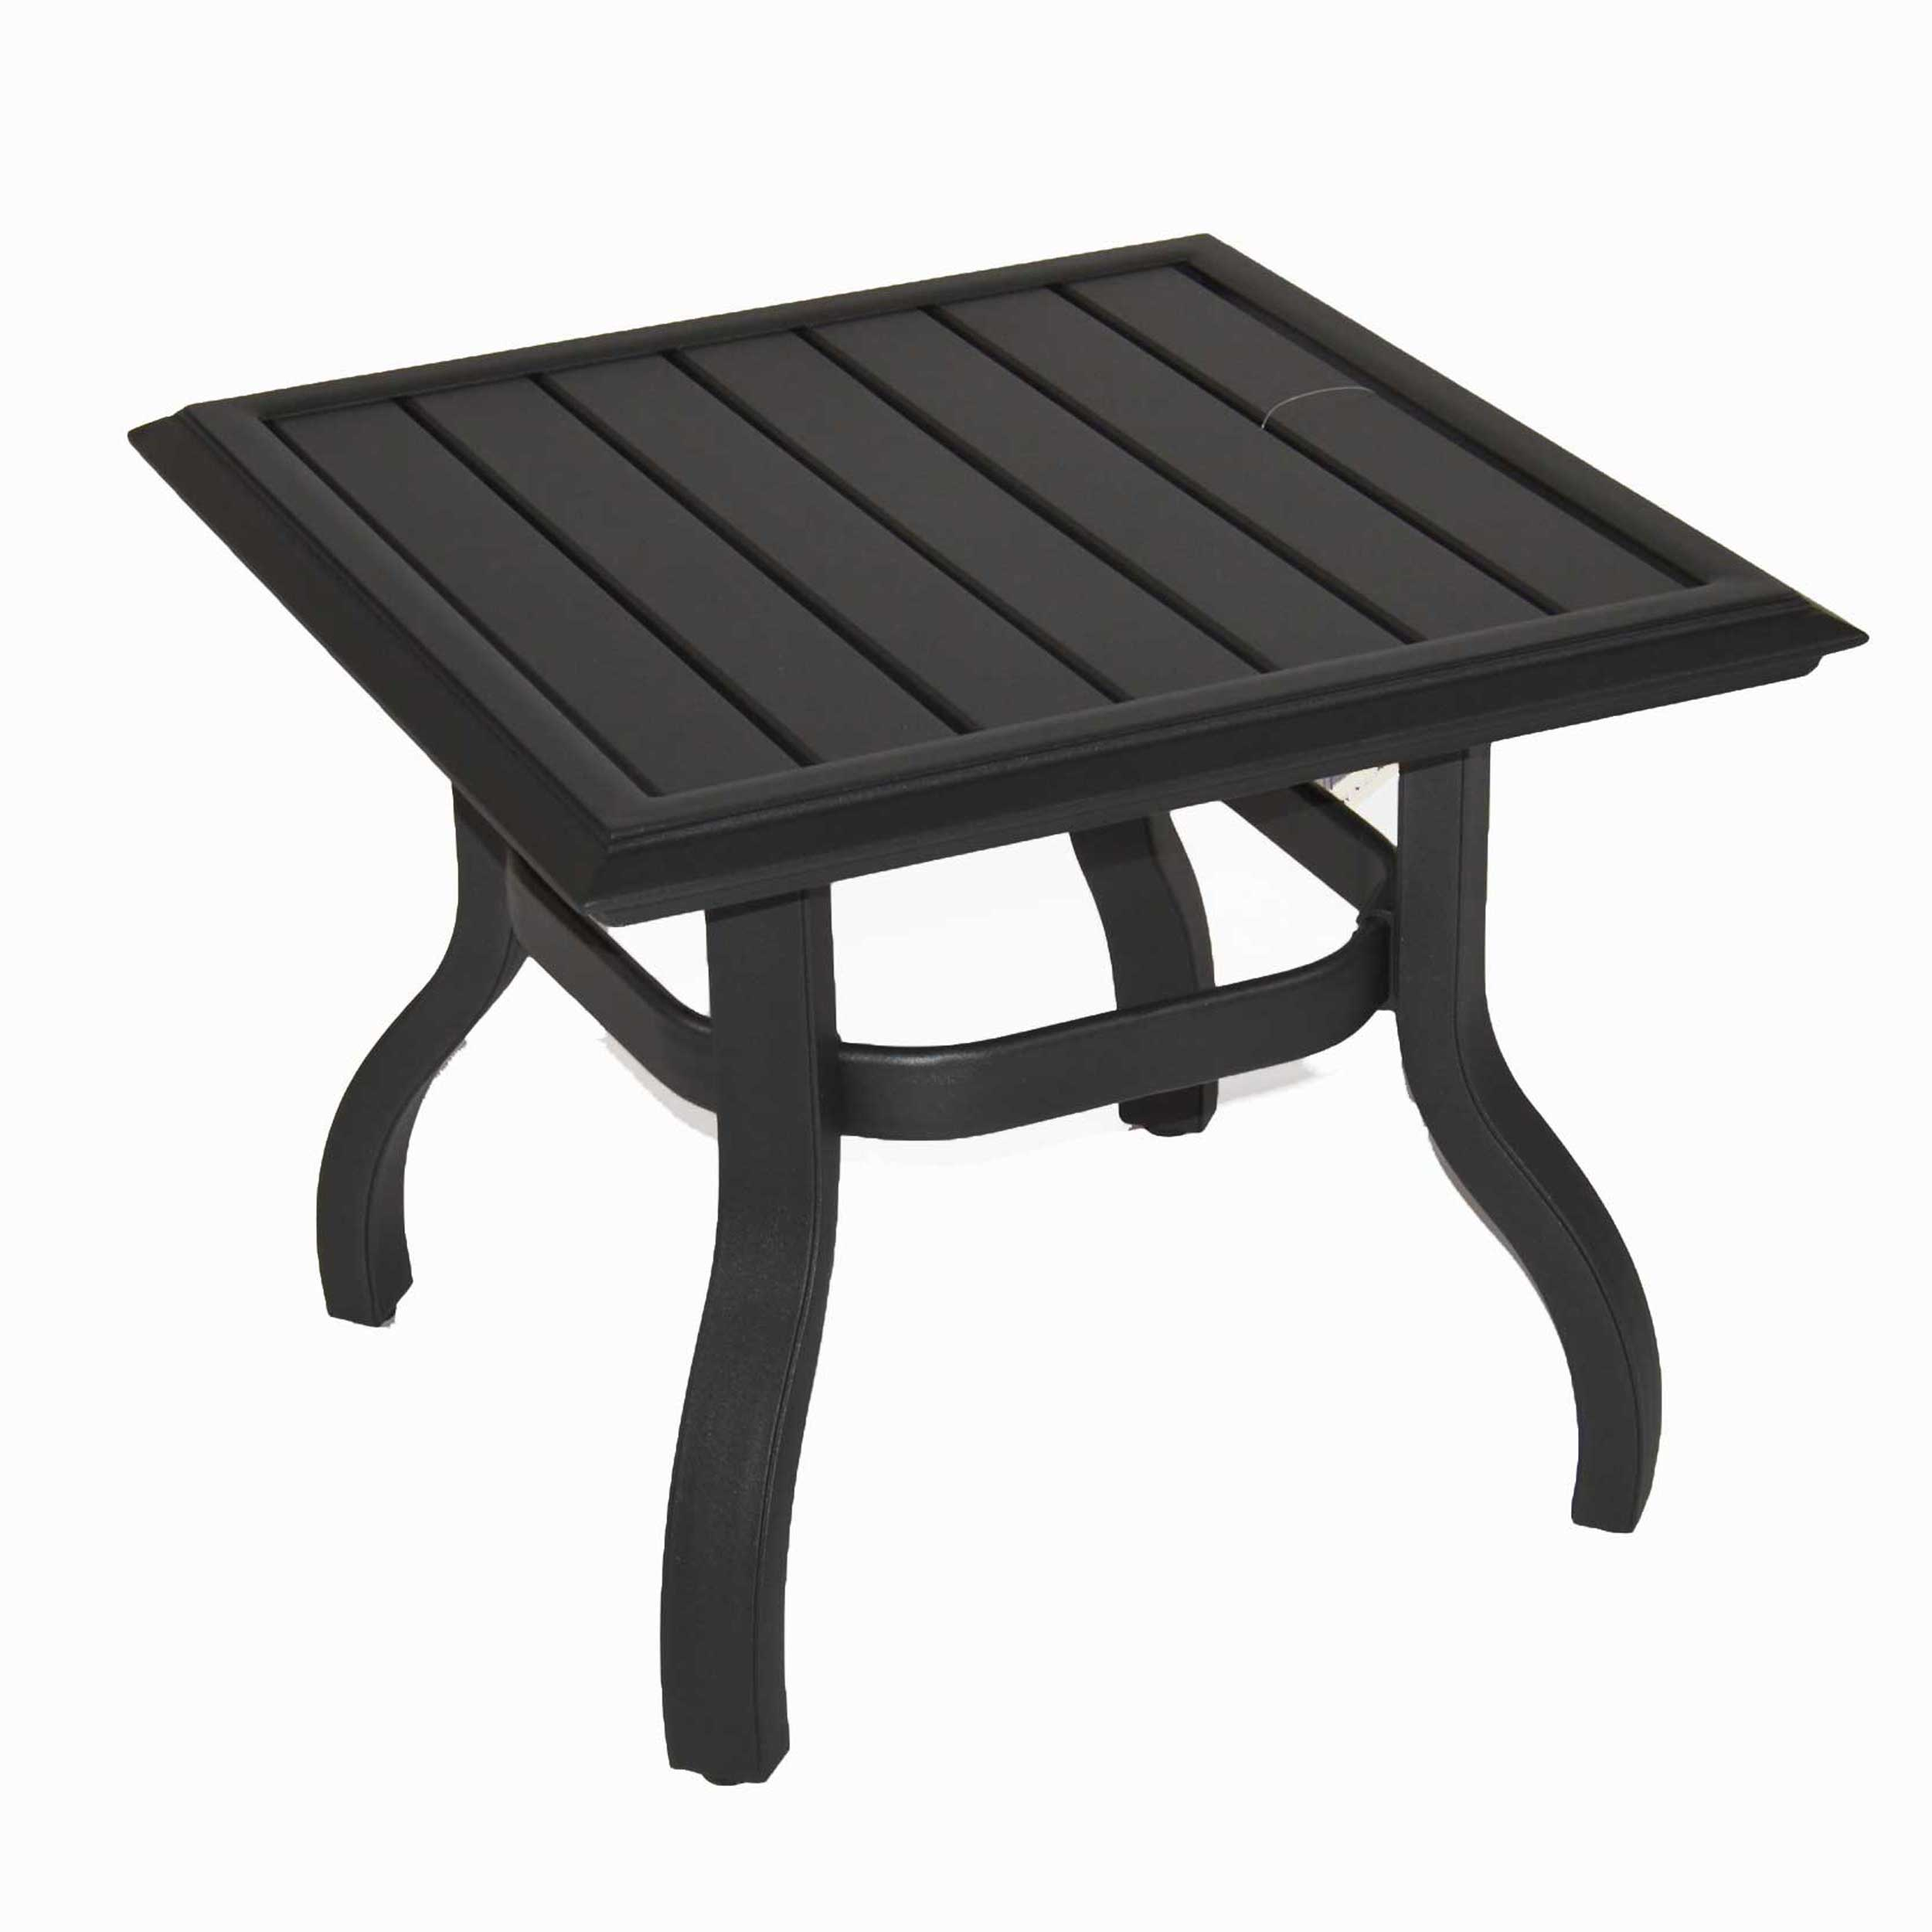 patio renaissance venice square accent table graphite outdoor with drawer pool umbrella stand black metal end dark cherry wood side battery powered lamps antique nautical lights